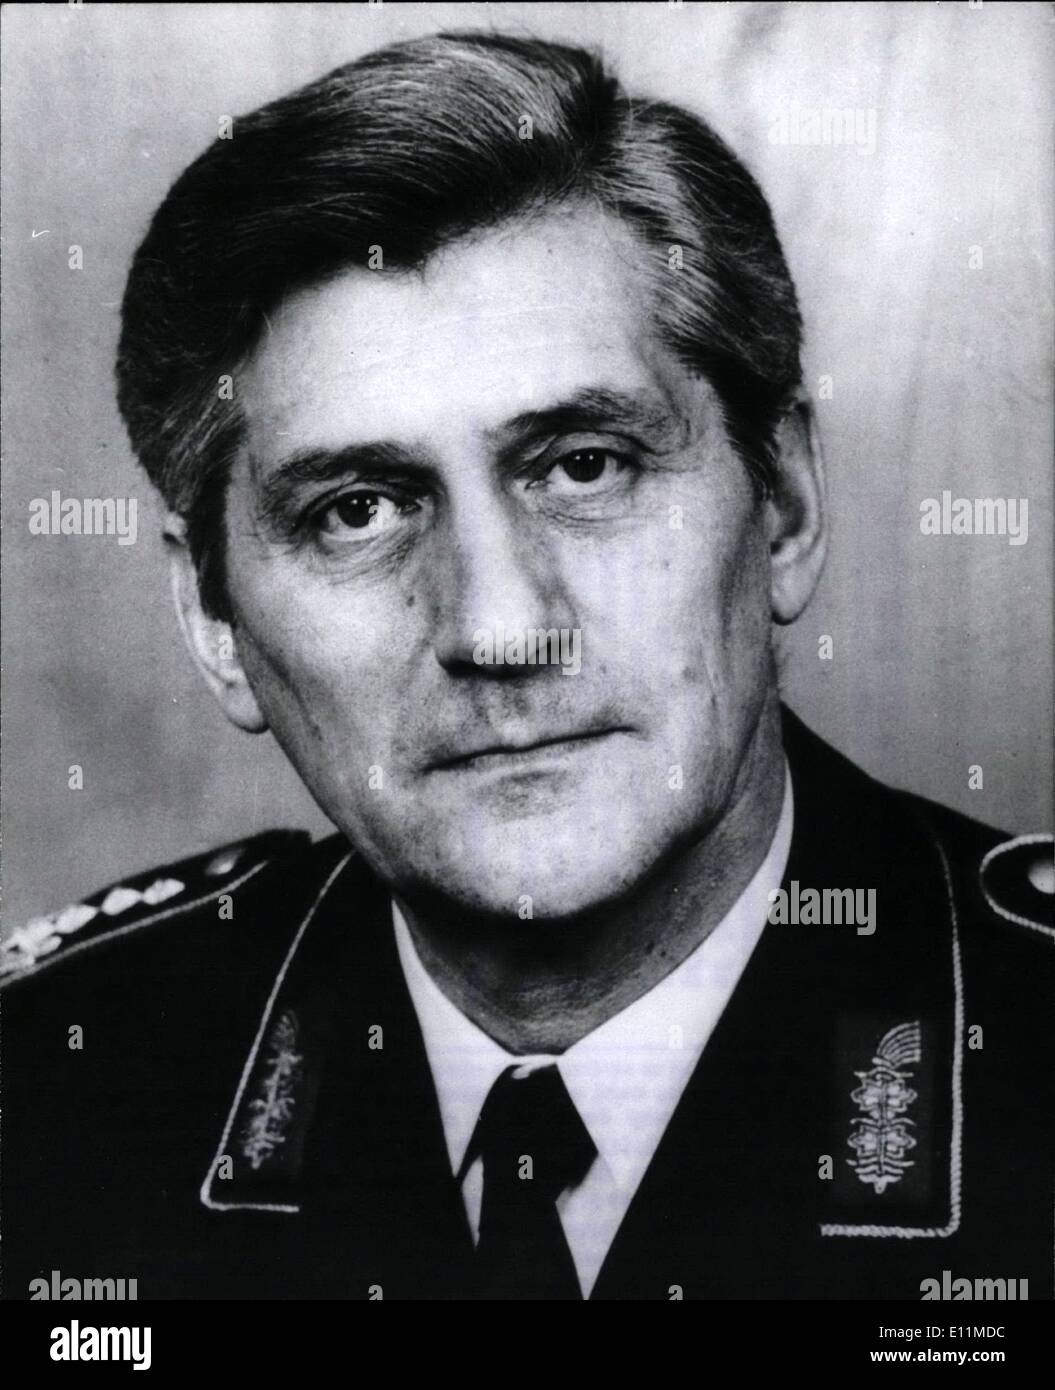 Nov. 11, 1978 - German General Harald Wust Retired; On November 28, 1978 Harald Wust picture , the rank first General in the Ge - Stock Image